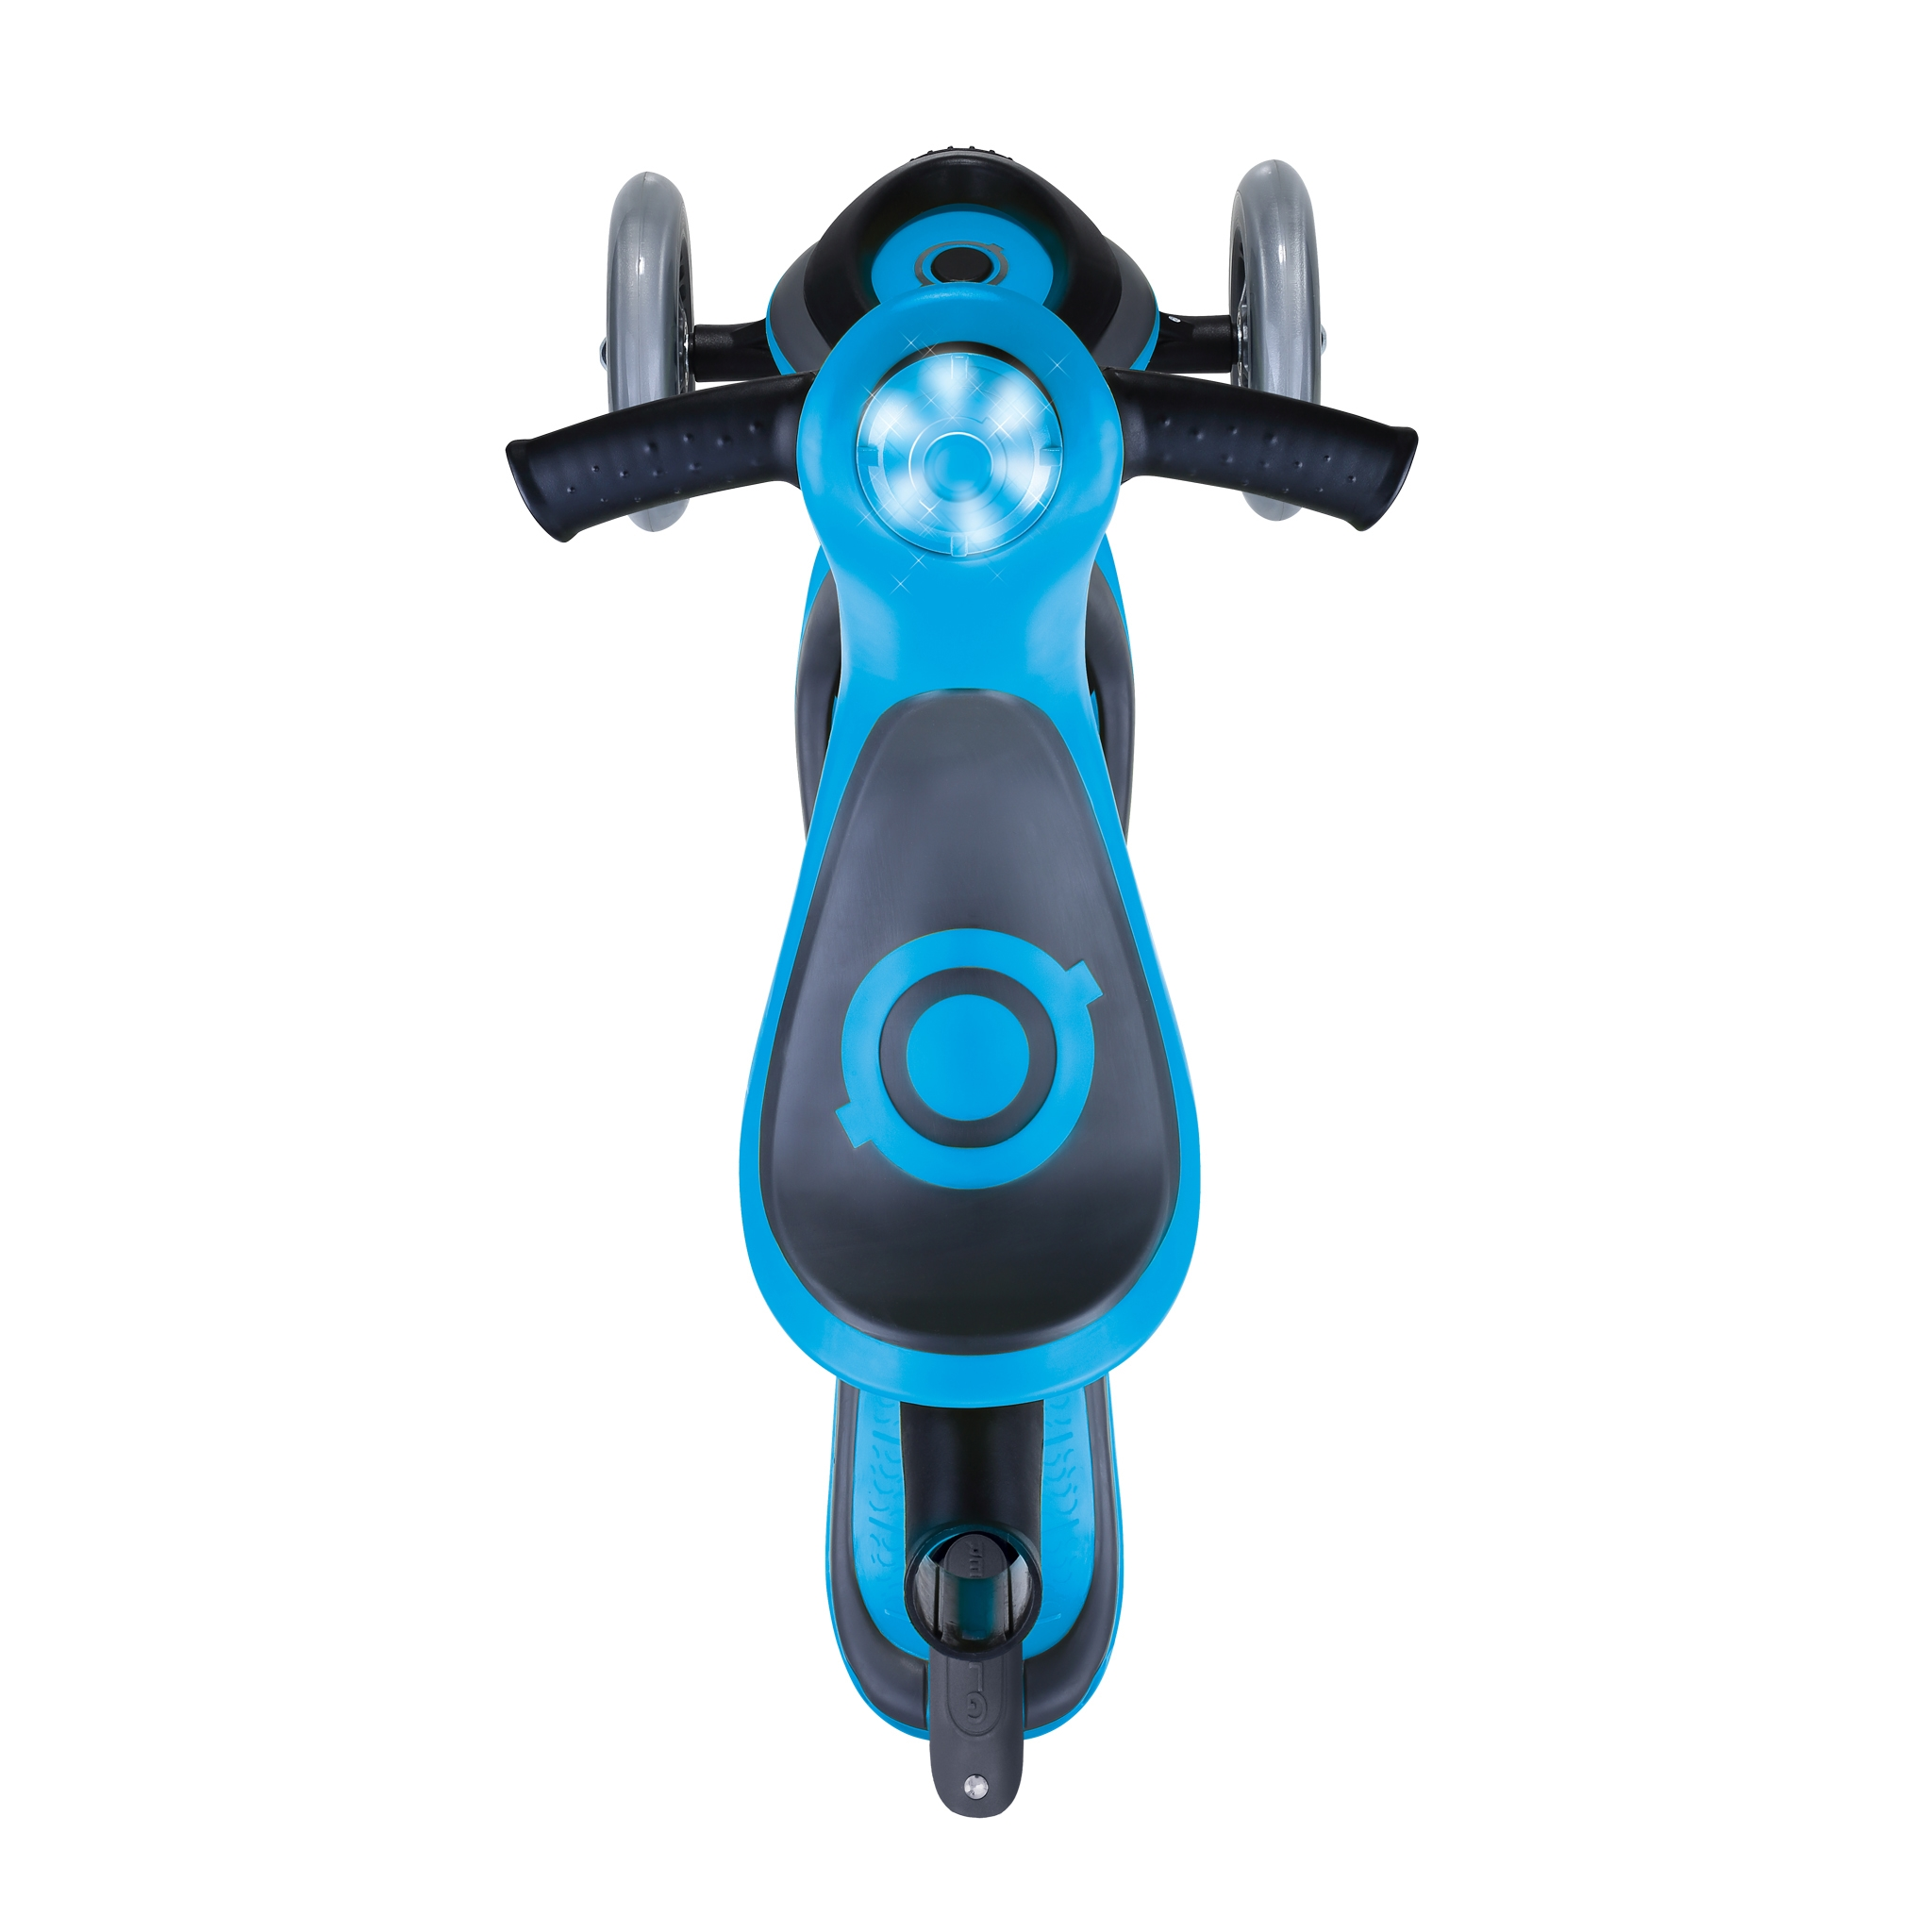 GO-UP-COMFORT-PLAY-scooter-with-extra-wide-seat_sky-blue